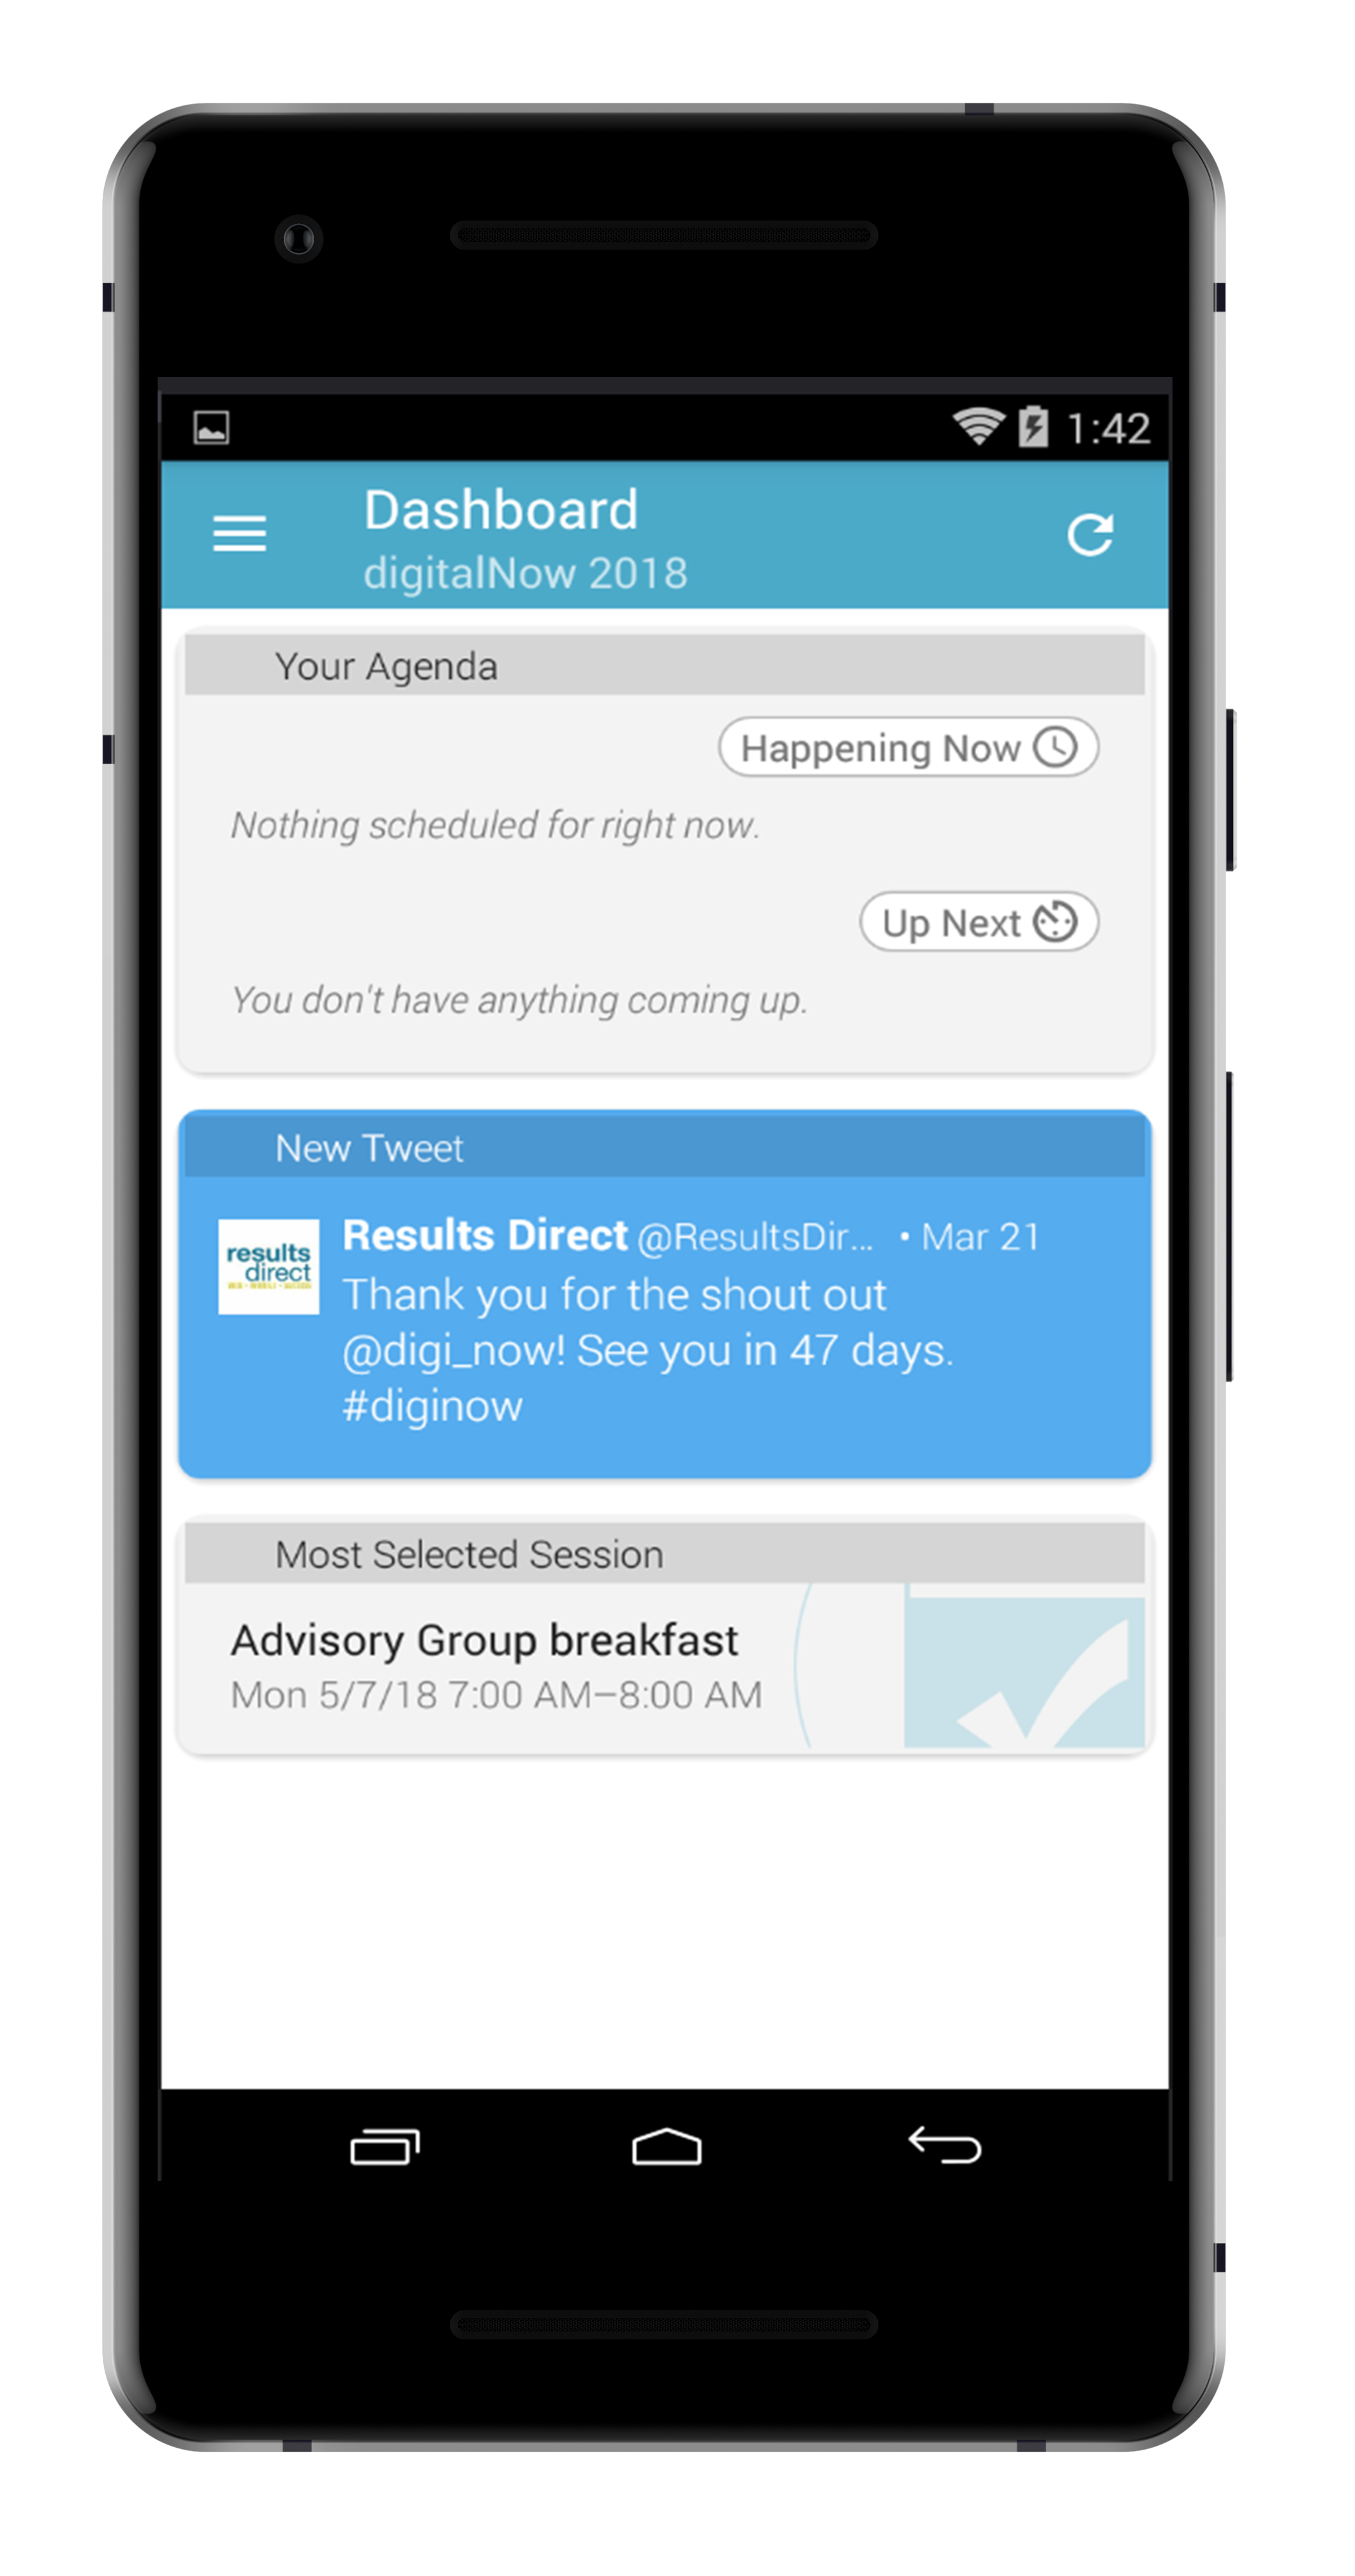 step 6. - WELCOME TO THE DIGITALNOW 2018 OFFICIAL CONFERENCE APP. THIS IS THE DASHBOARD SCREEN WHERE YOUR AGENDA WILL BE STORED, ANY CURRENT CONVERSATIONS, AS WELL AS YOUR SOCIAL OPTIONS.